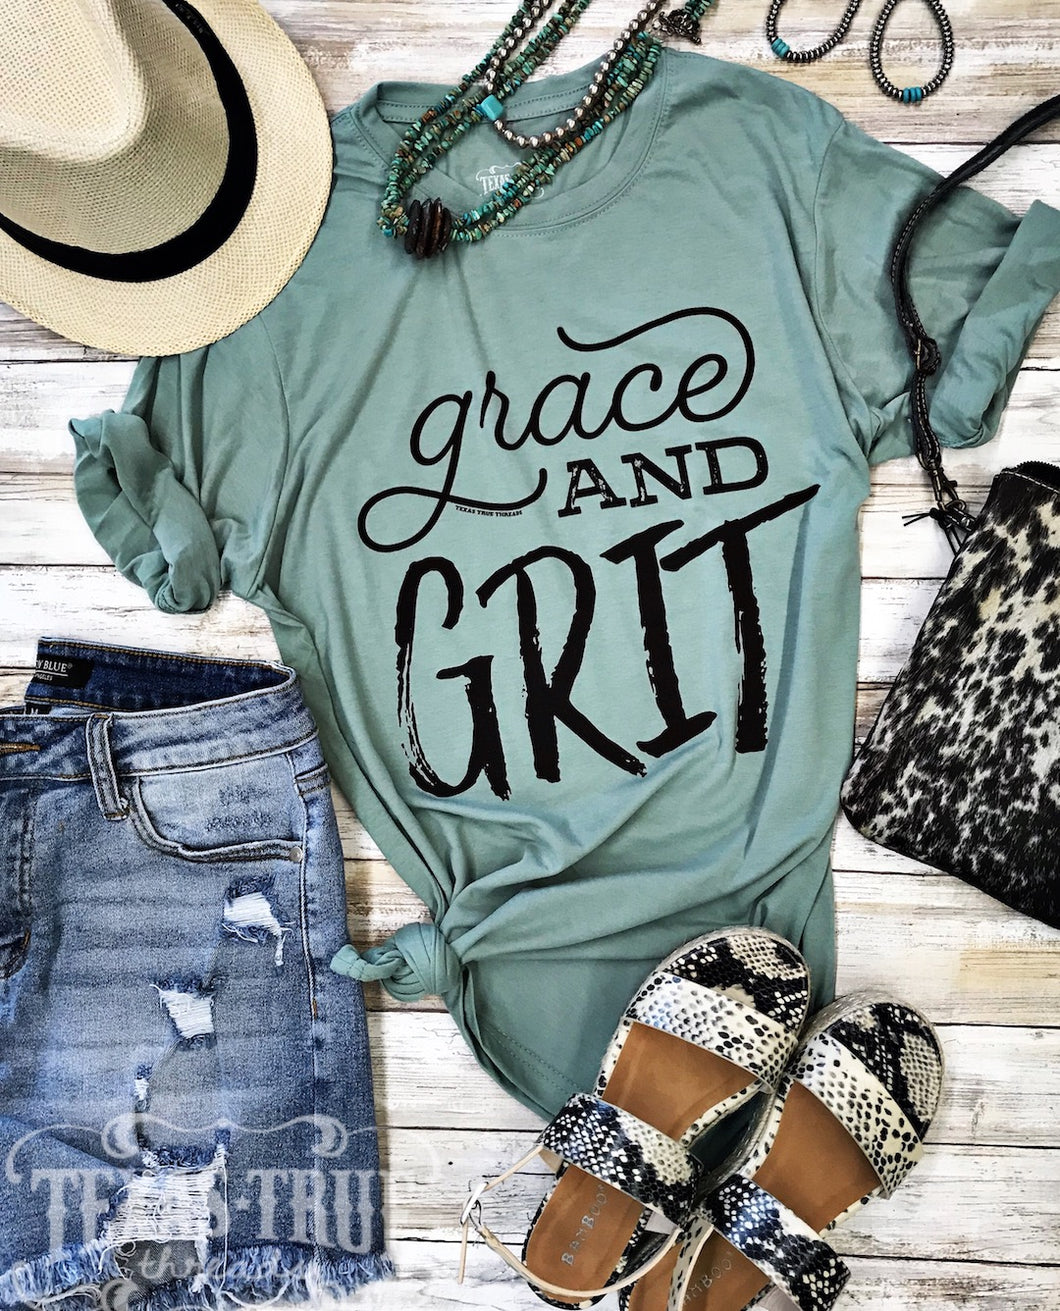 Grace and Grit Tee Graphic Tees > women > woman > classy > ranch life > country girl > rural > southern > lady > hard working > boss babe > strong women > mom > momlife > style > farm girl > teal > green > cotton blend > texas boutique  Texas True Threads - Horse Creek Boutique